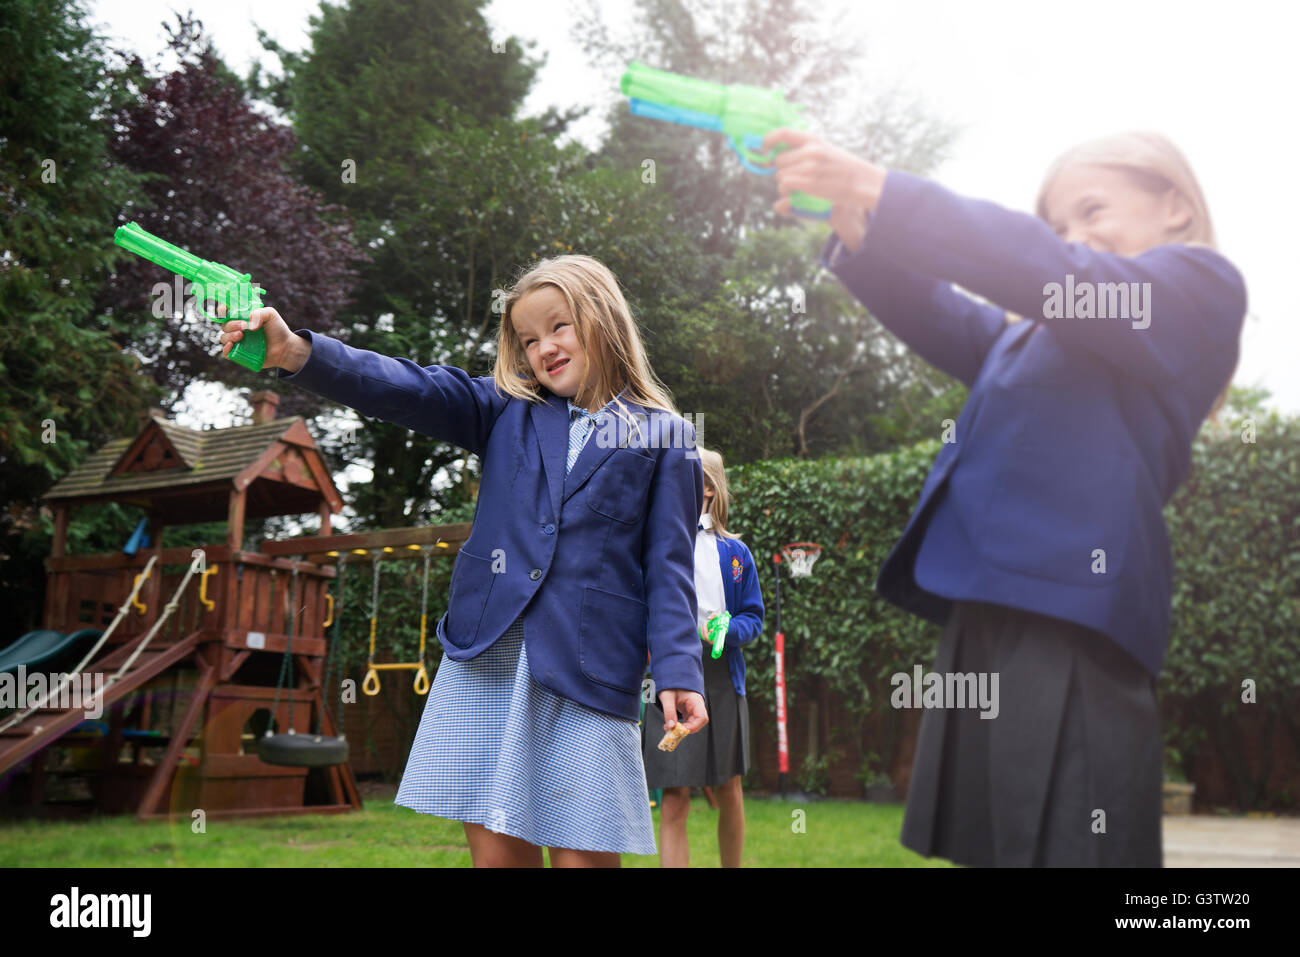 Two ten year old girls in school uniform holding water pistols. - Stock Image